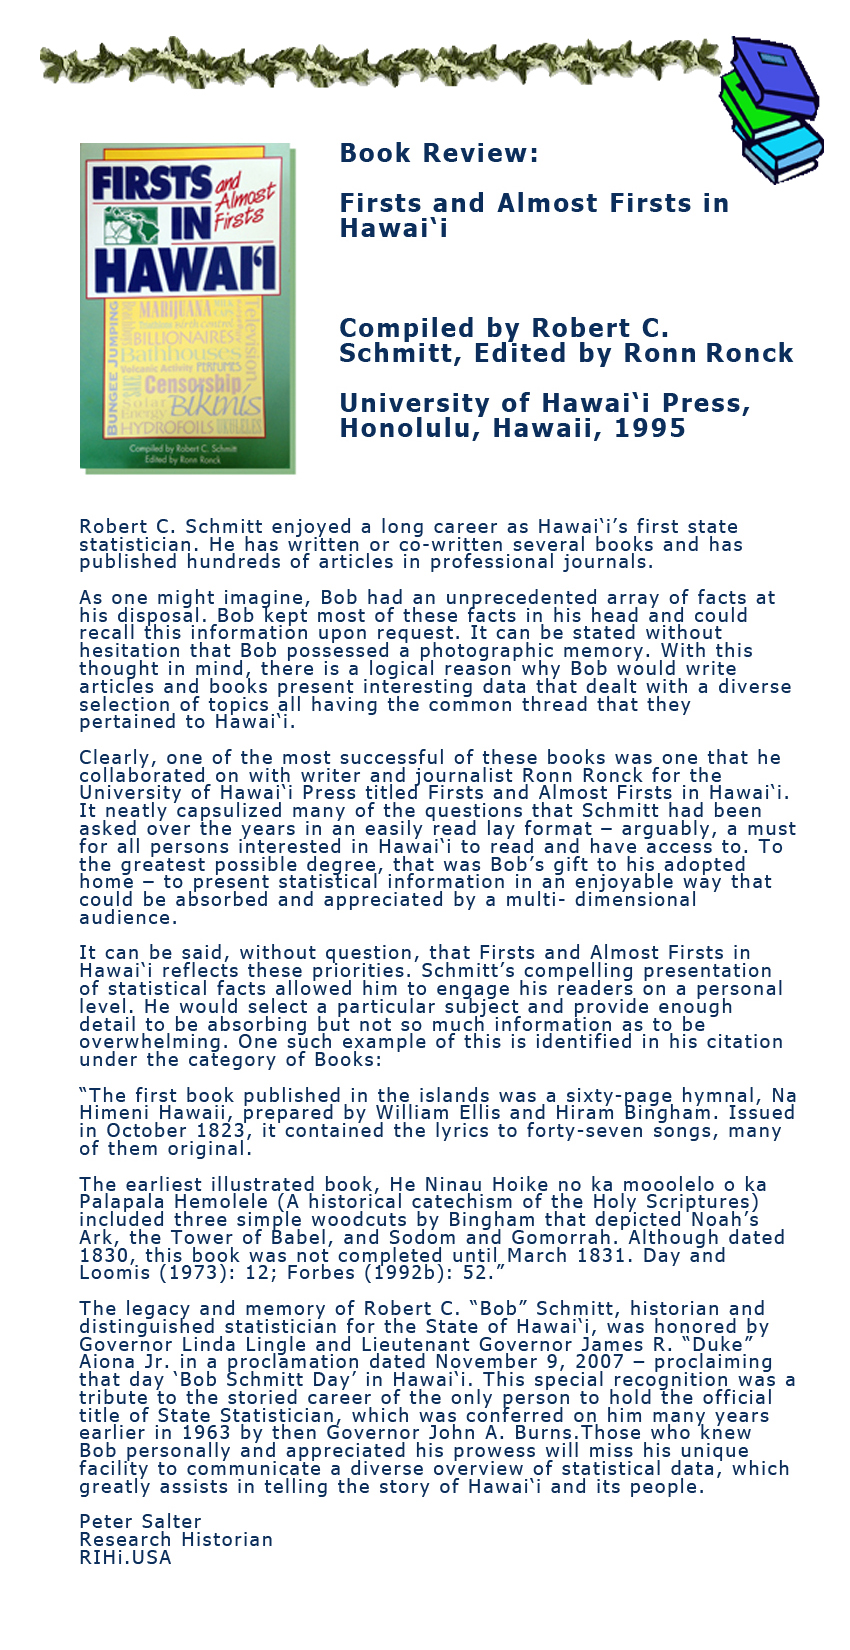 Firsts and almost firsts in Hawaii by Robert Schmidt book review.